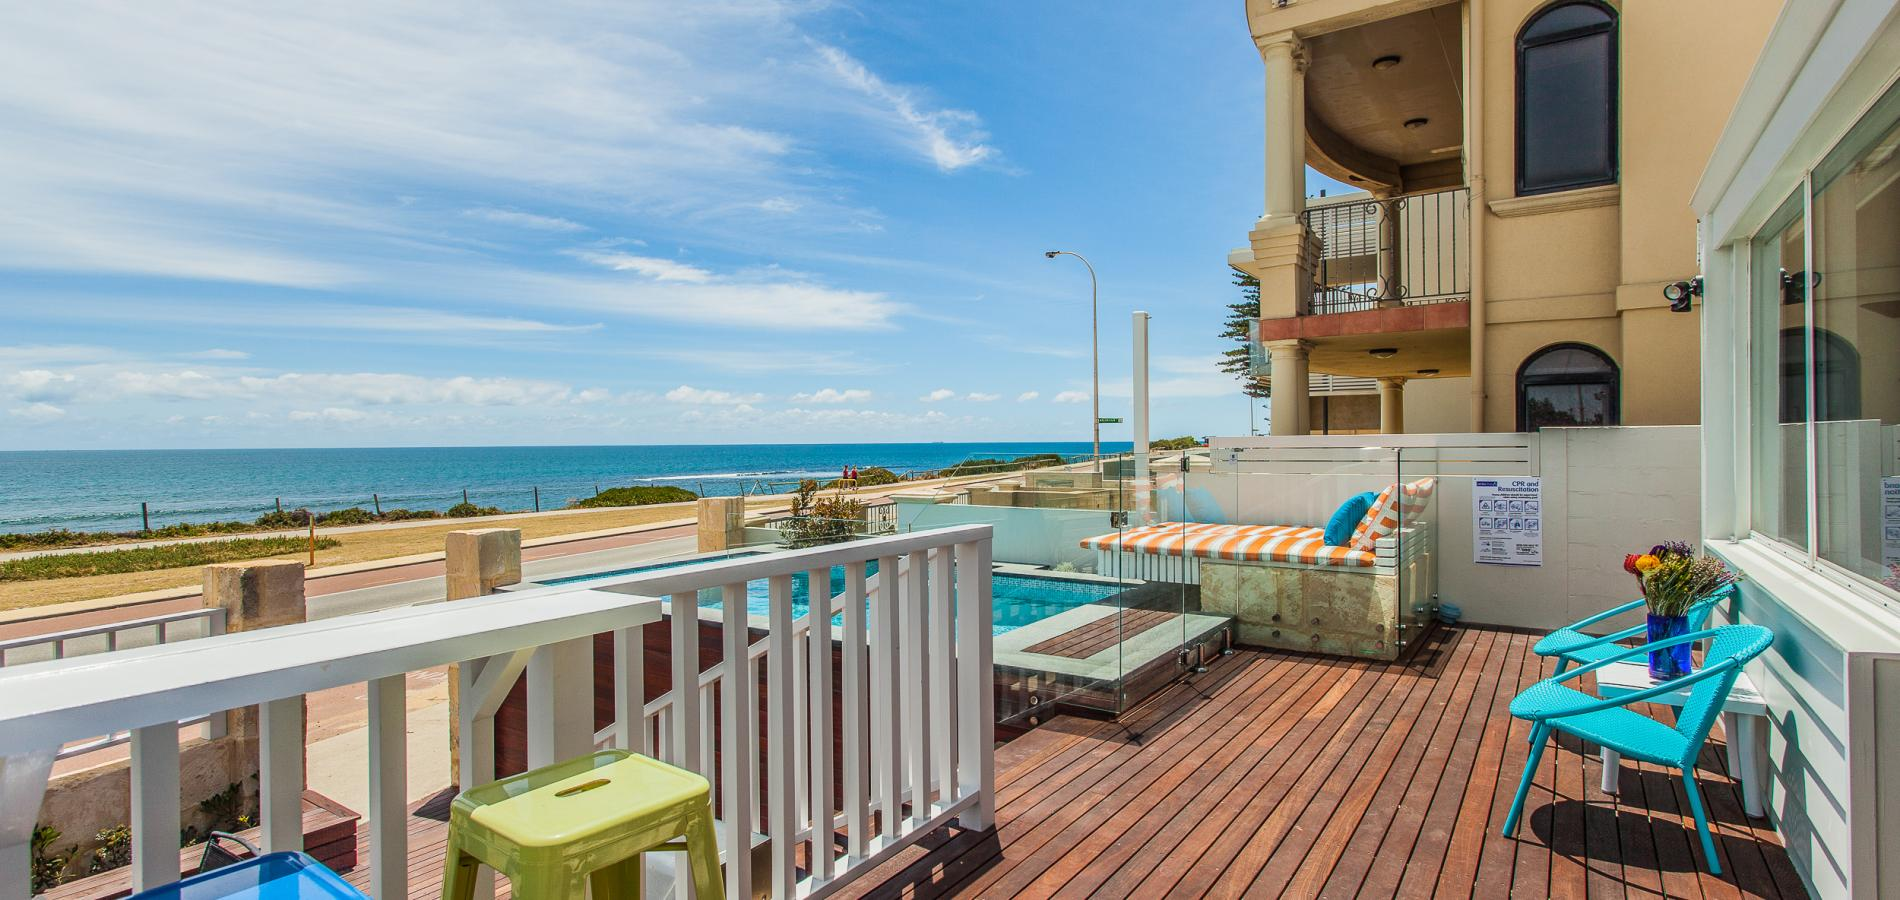 Cottesloe Beach House Stays - Short Term Accommodation Perth